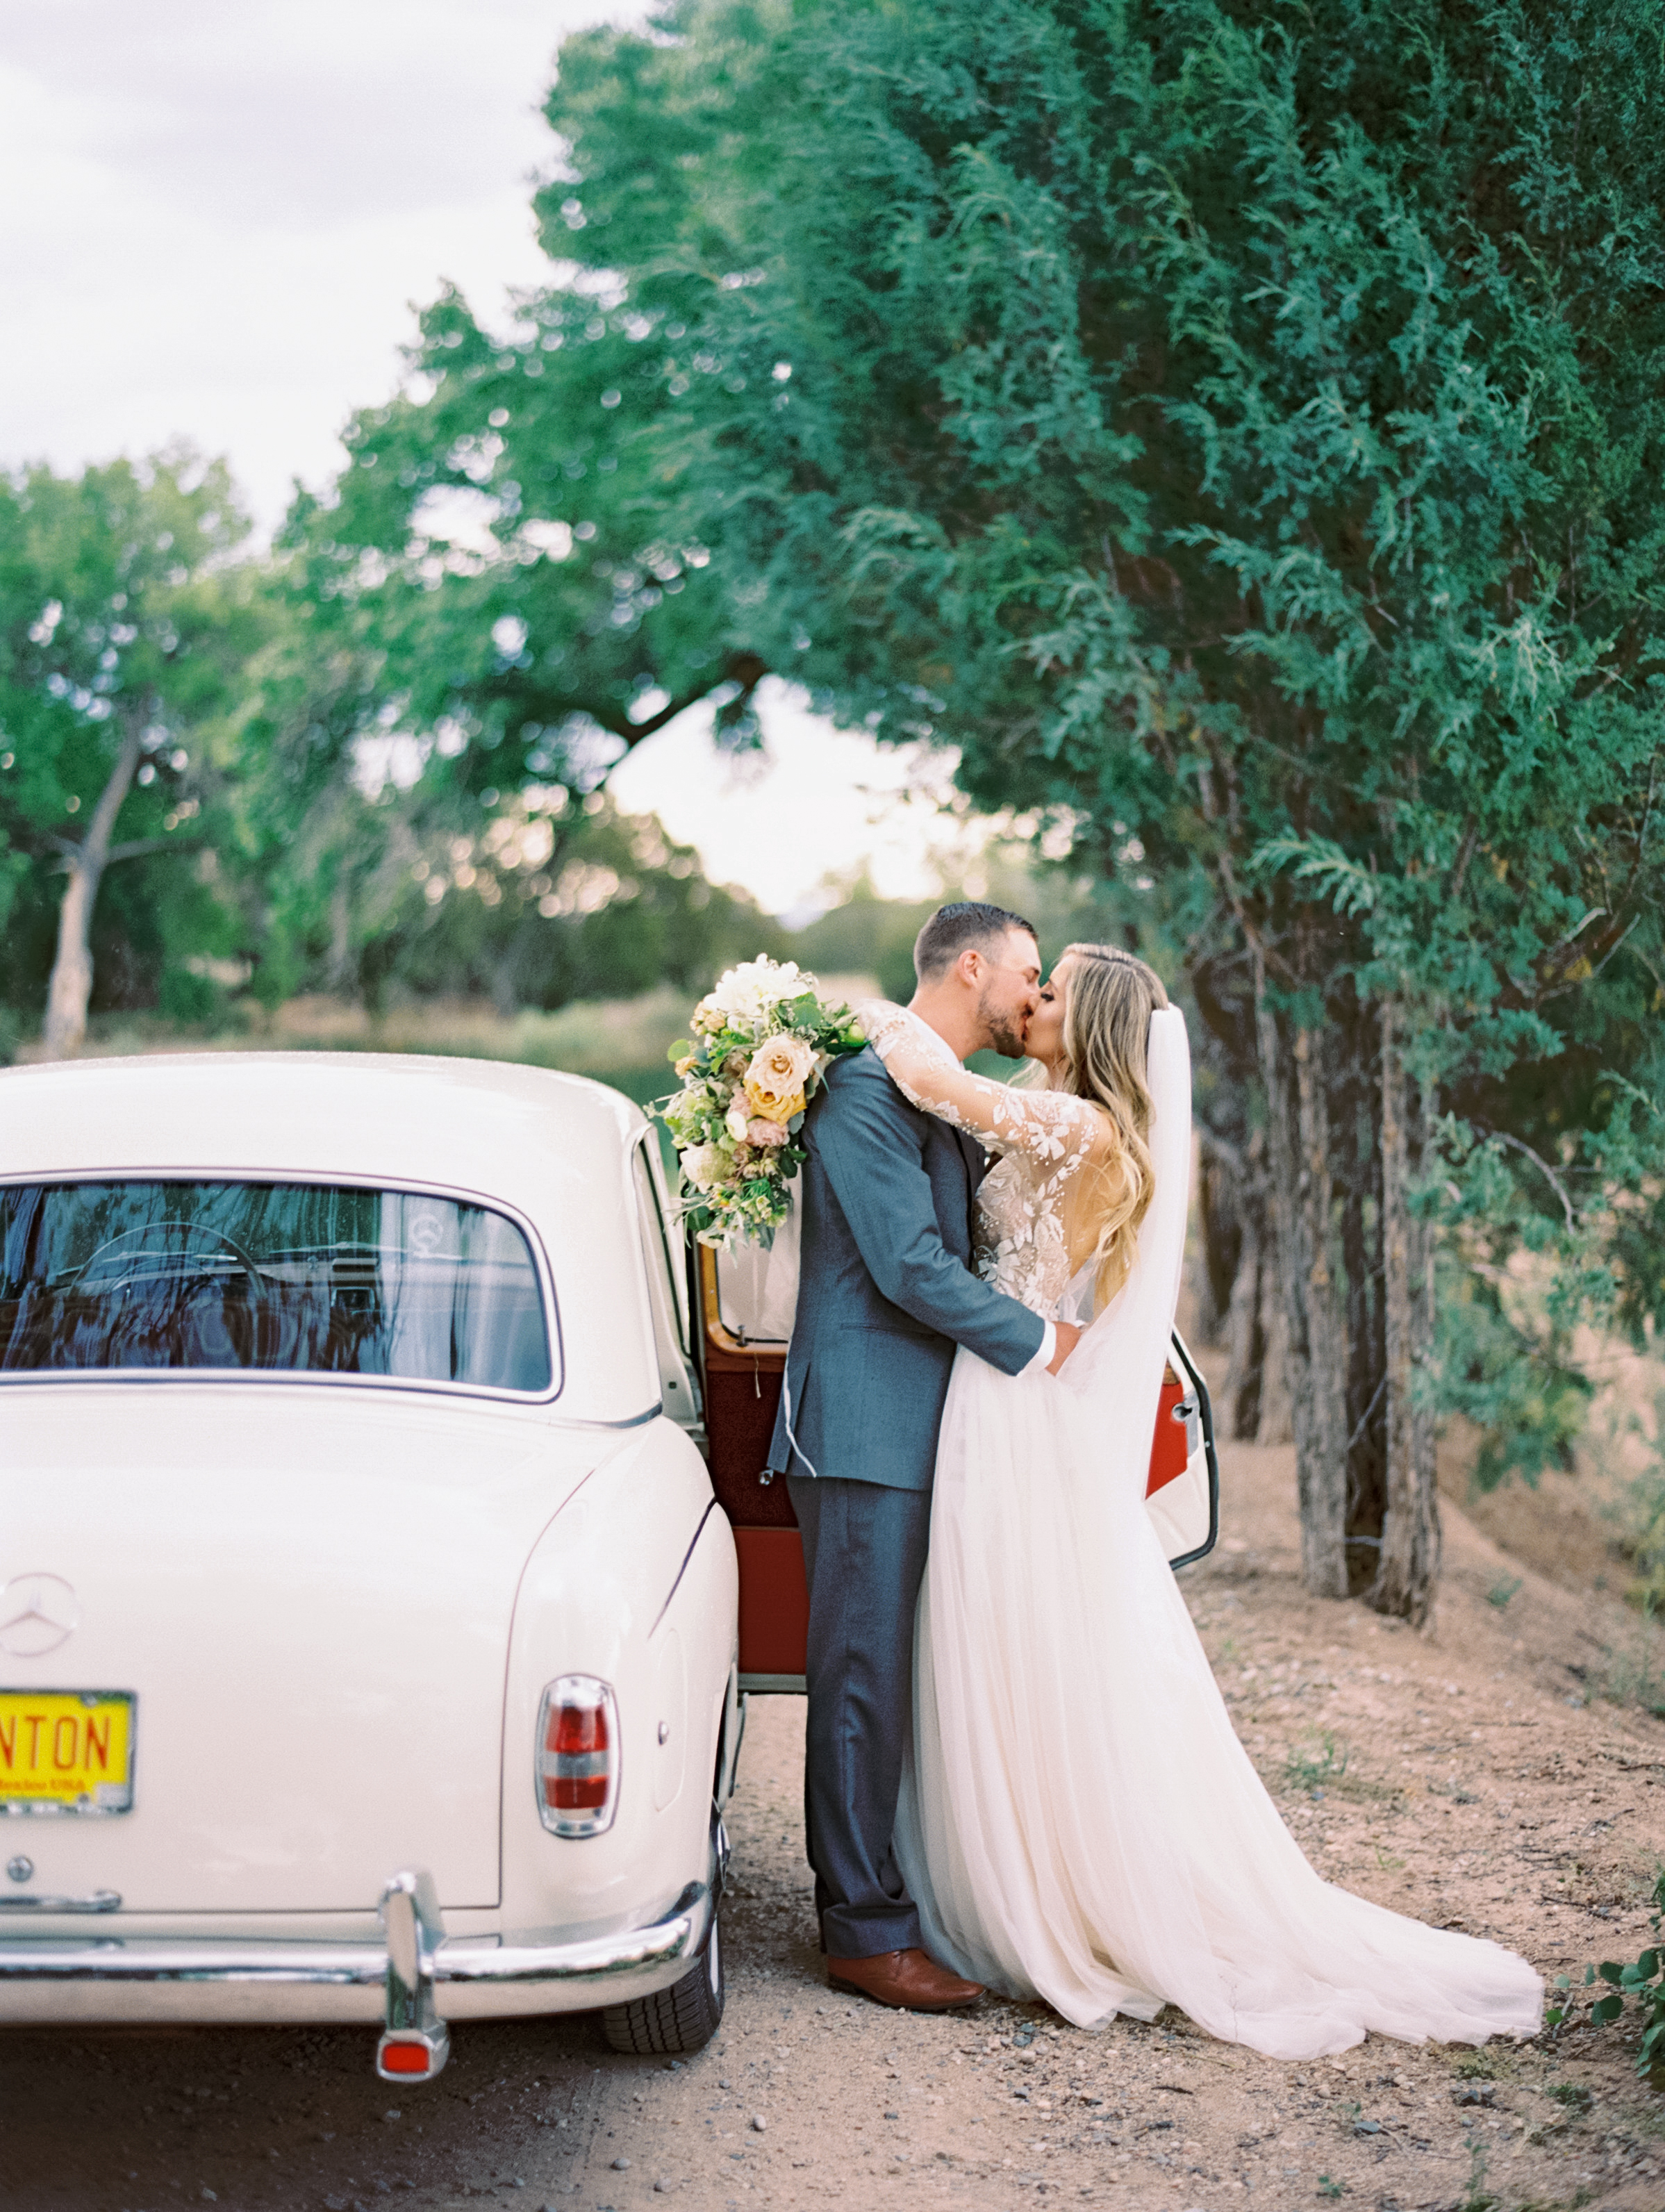 - Jacie & Brycen - When I first came across Becca's work prior to getting engaged, I thought to myself